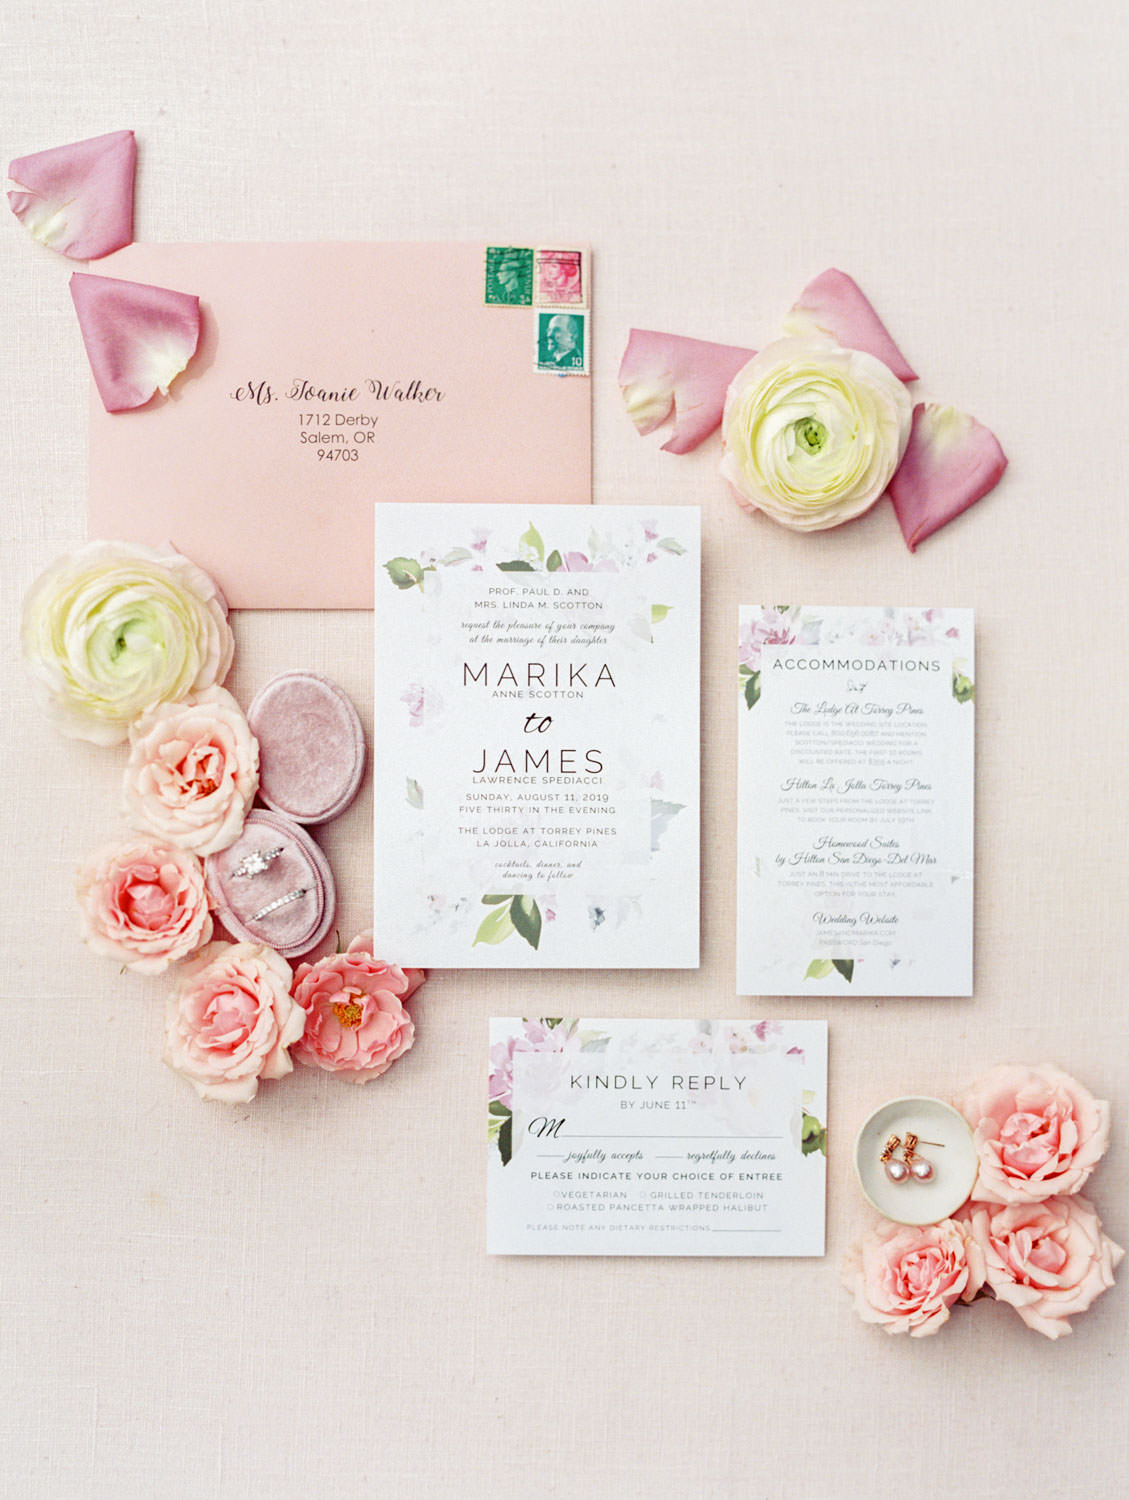 White wedding invitation with green and lavender floral border and pink envelope, matching details cards, film photography by Cavin Elizabeth Photography